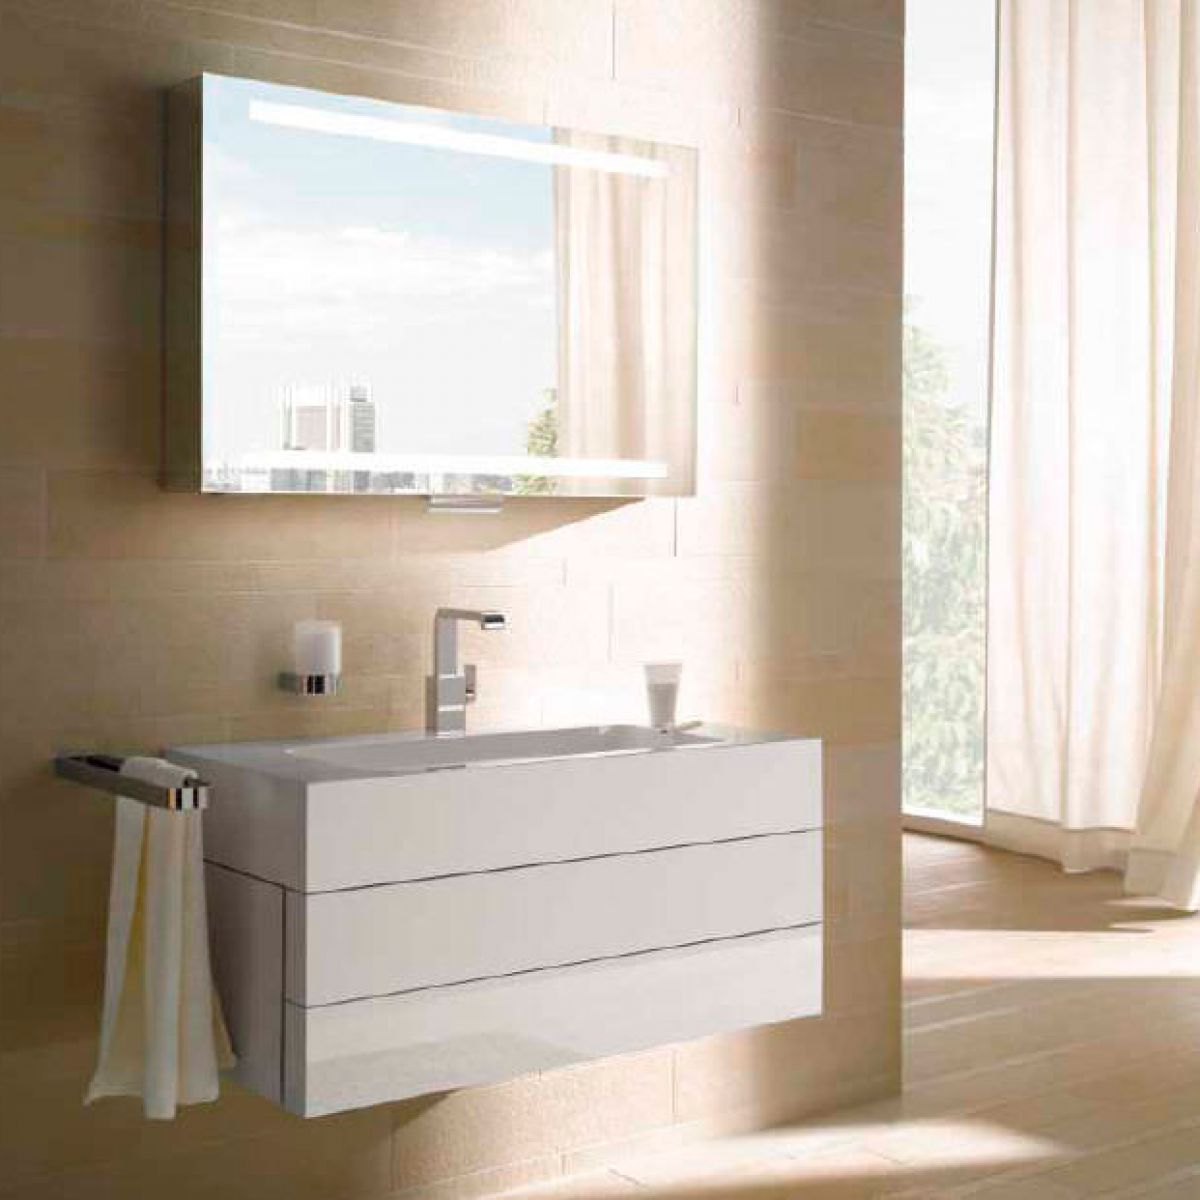 keuco bathroom cabinets keuco edition 300 mirror cabinet uk bathrooms 13299